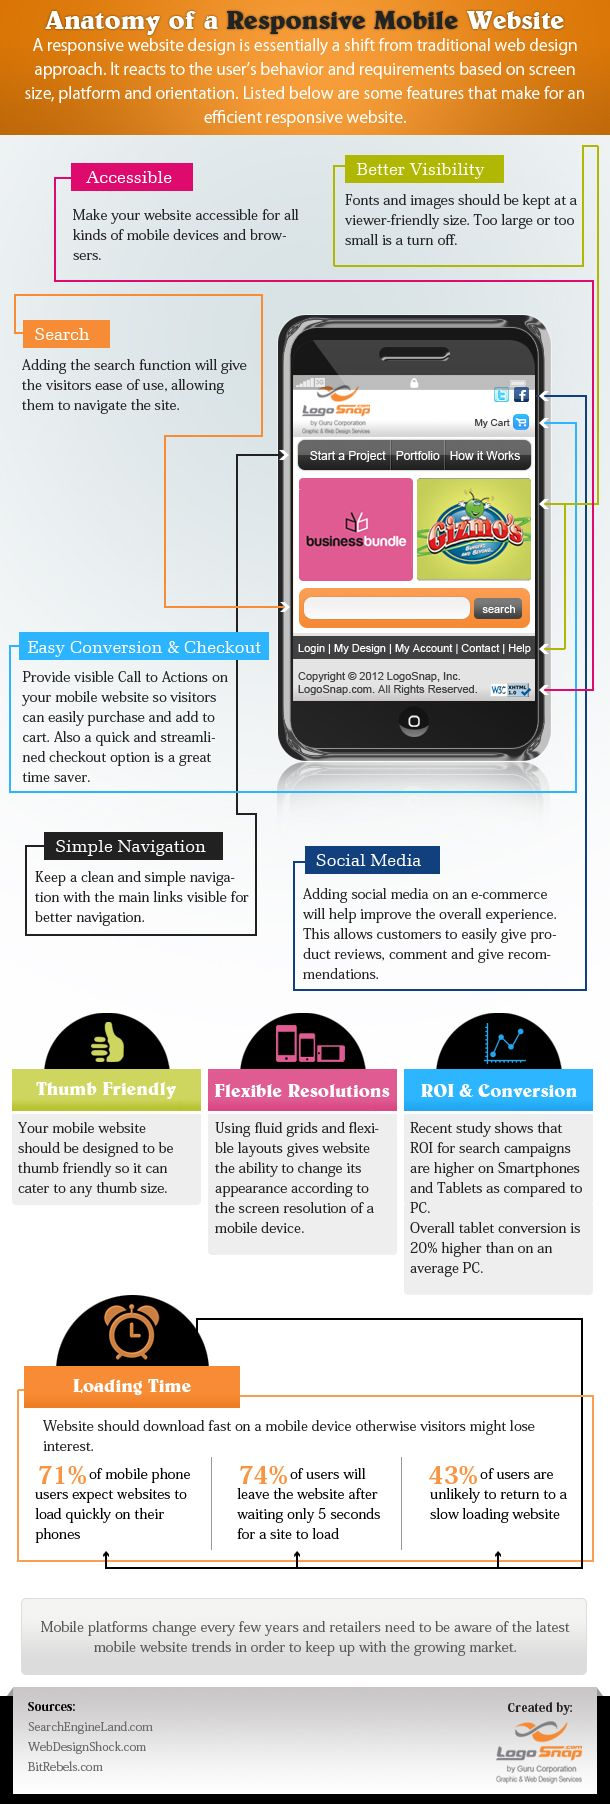 Anatomy of a responsive mobile website infographic  --  http://visual.ly/ structure-responsive-mobile-web-design     A responsive website design is essentially a shift from traditional web design approach and requires some essential features to work efficiently.